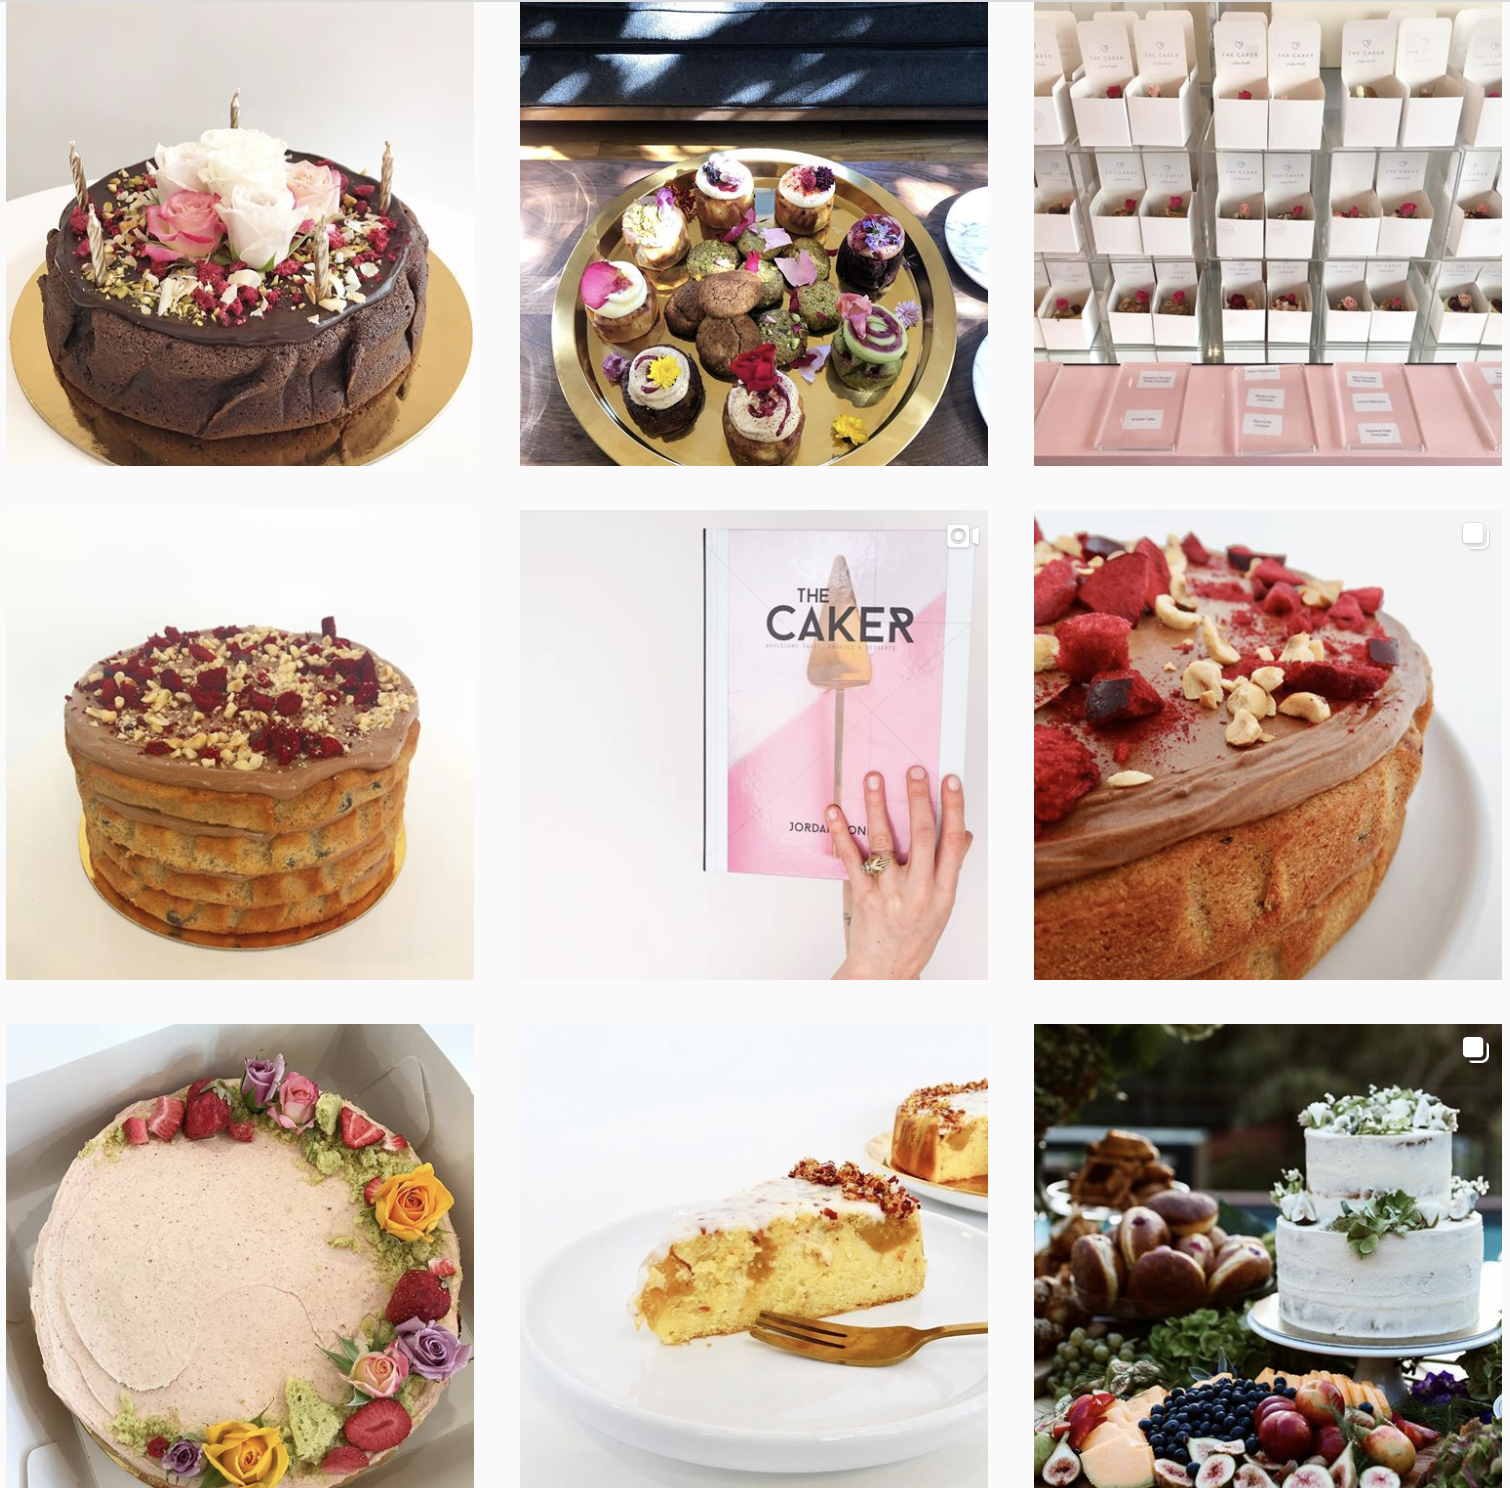 The Caker Instagram feed from:  https://www.instagram.com/thecaker/